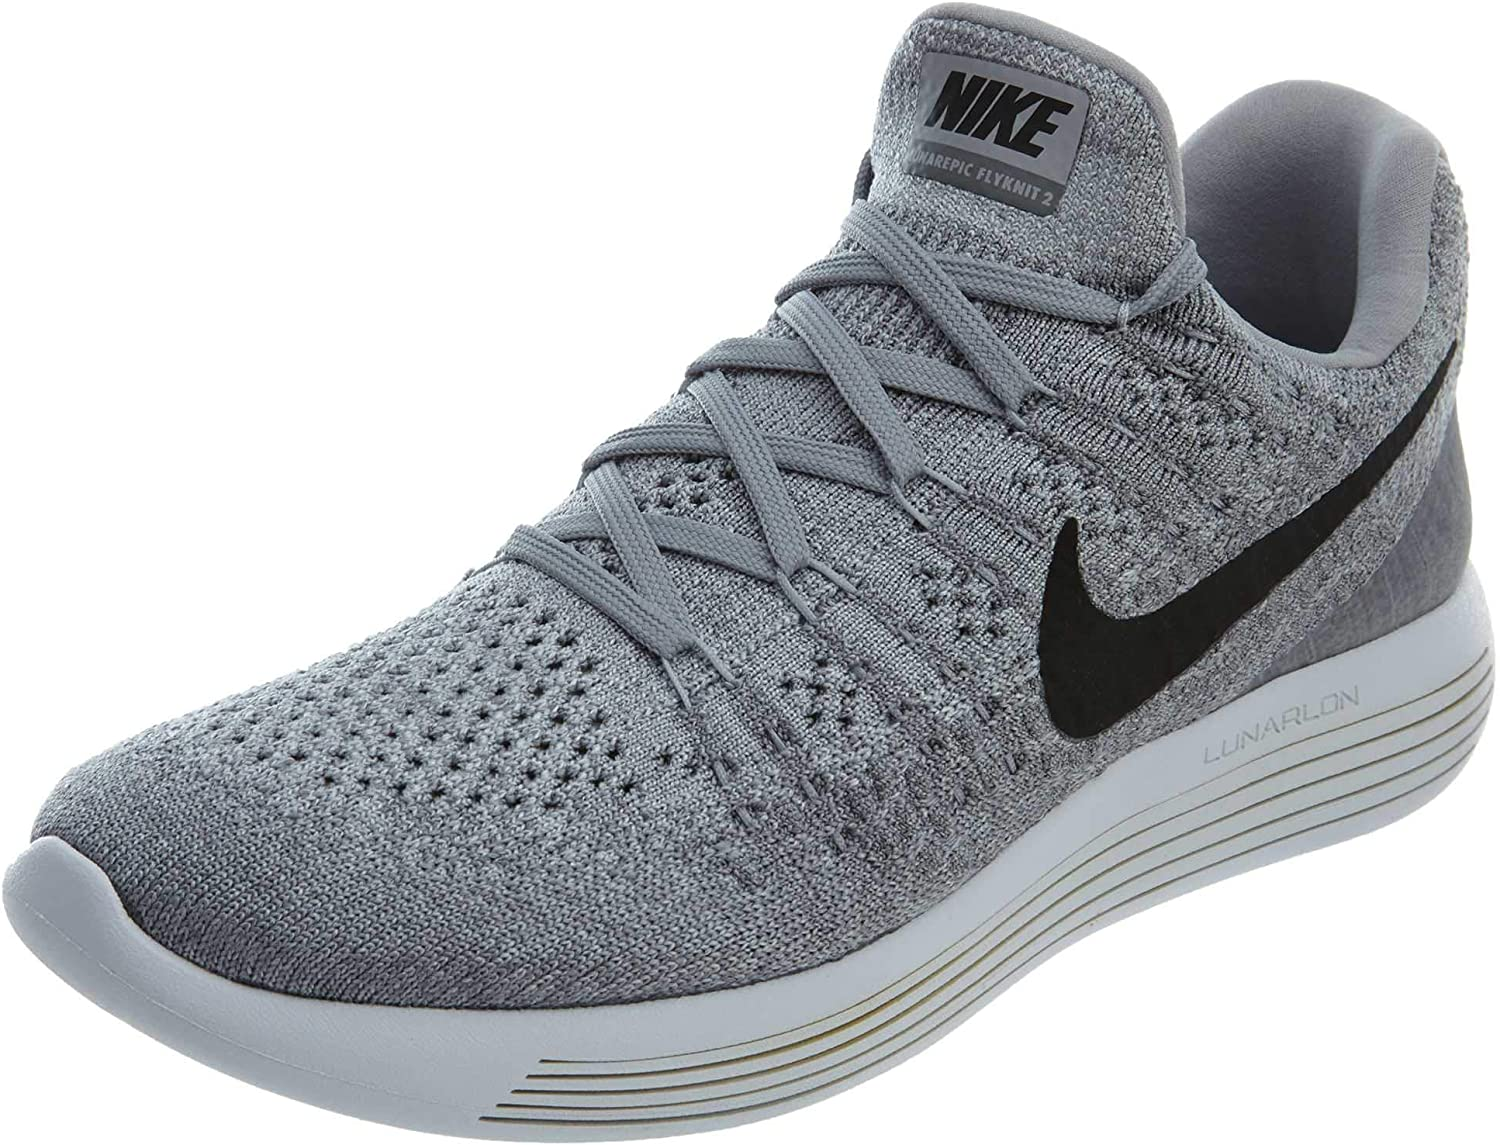 Nike Women s Lunarepic Low Flyknit 2 Running Shoe 7, Wolf Grey Cool Grey Pure Platinum Black